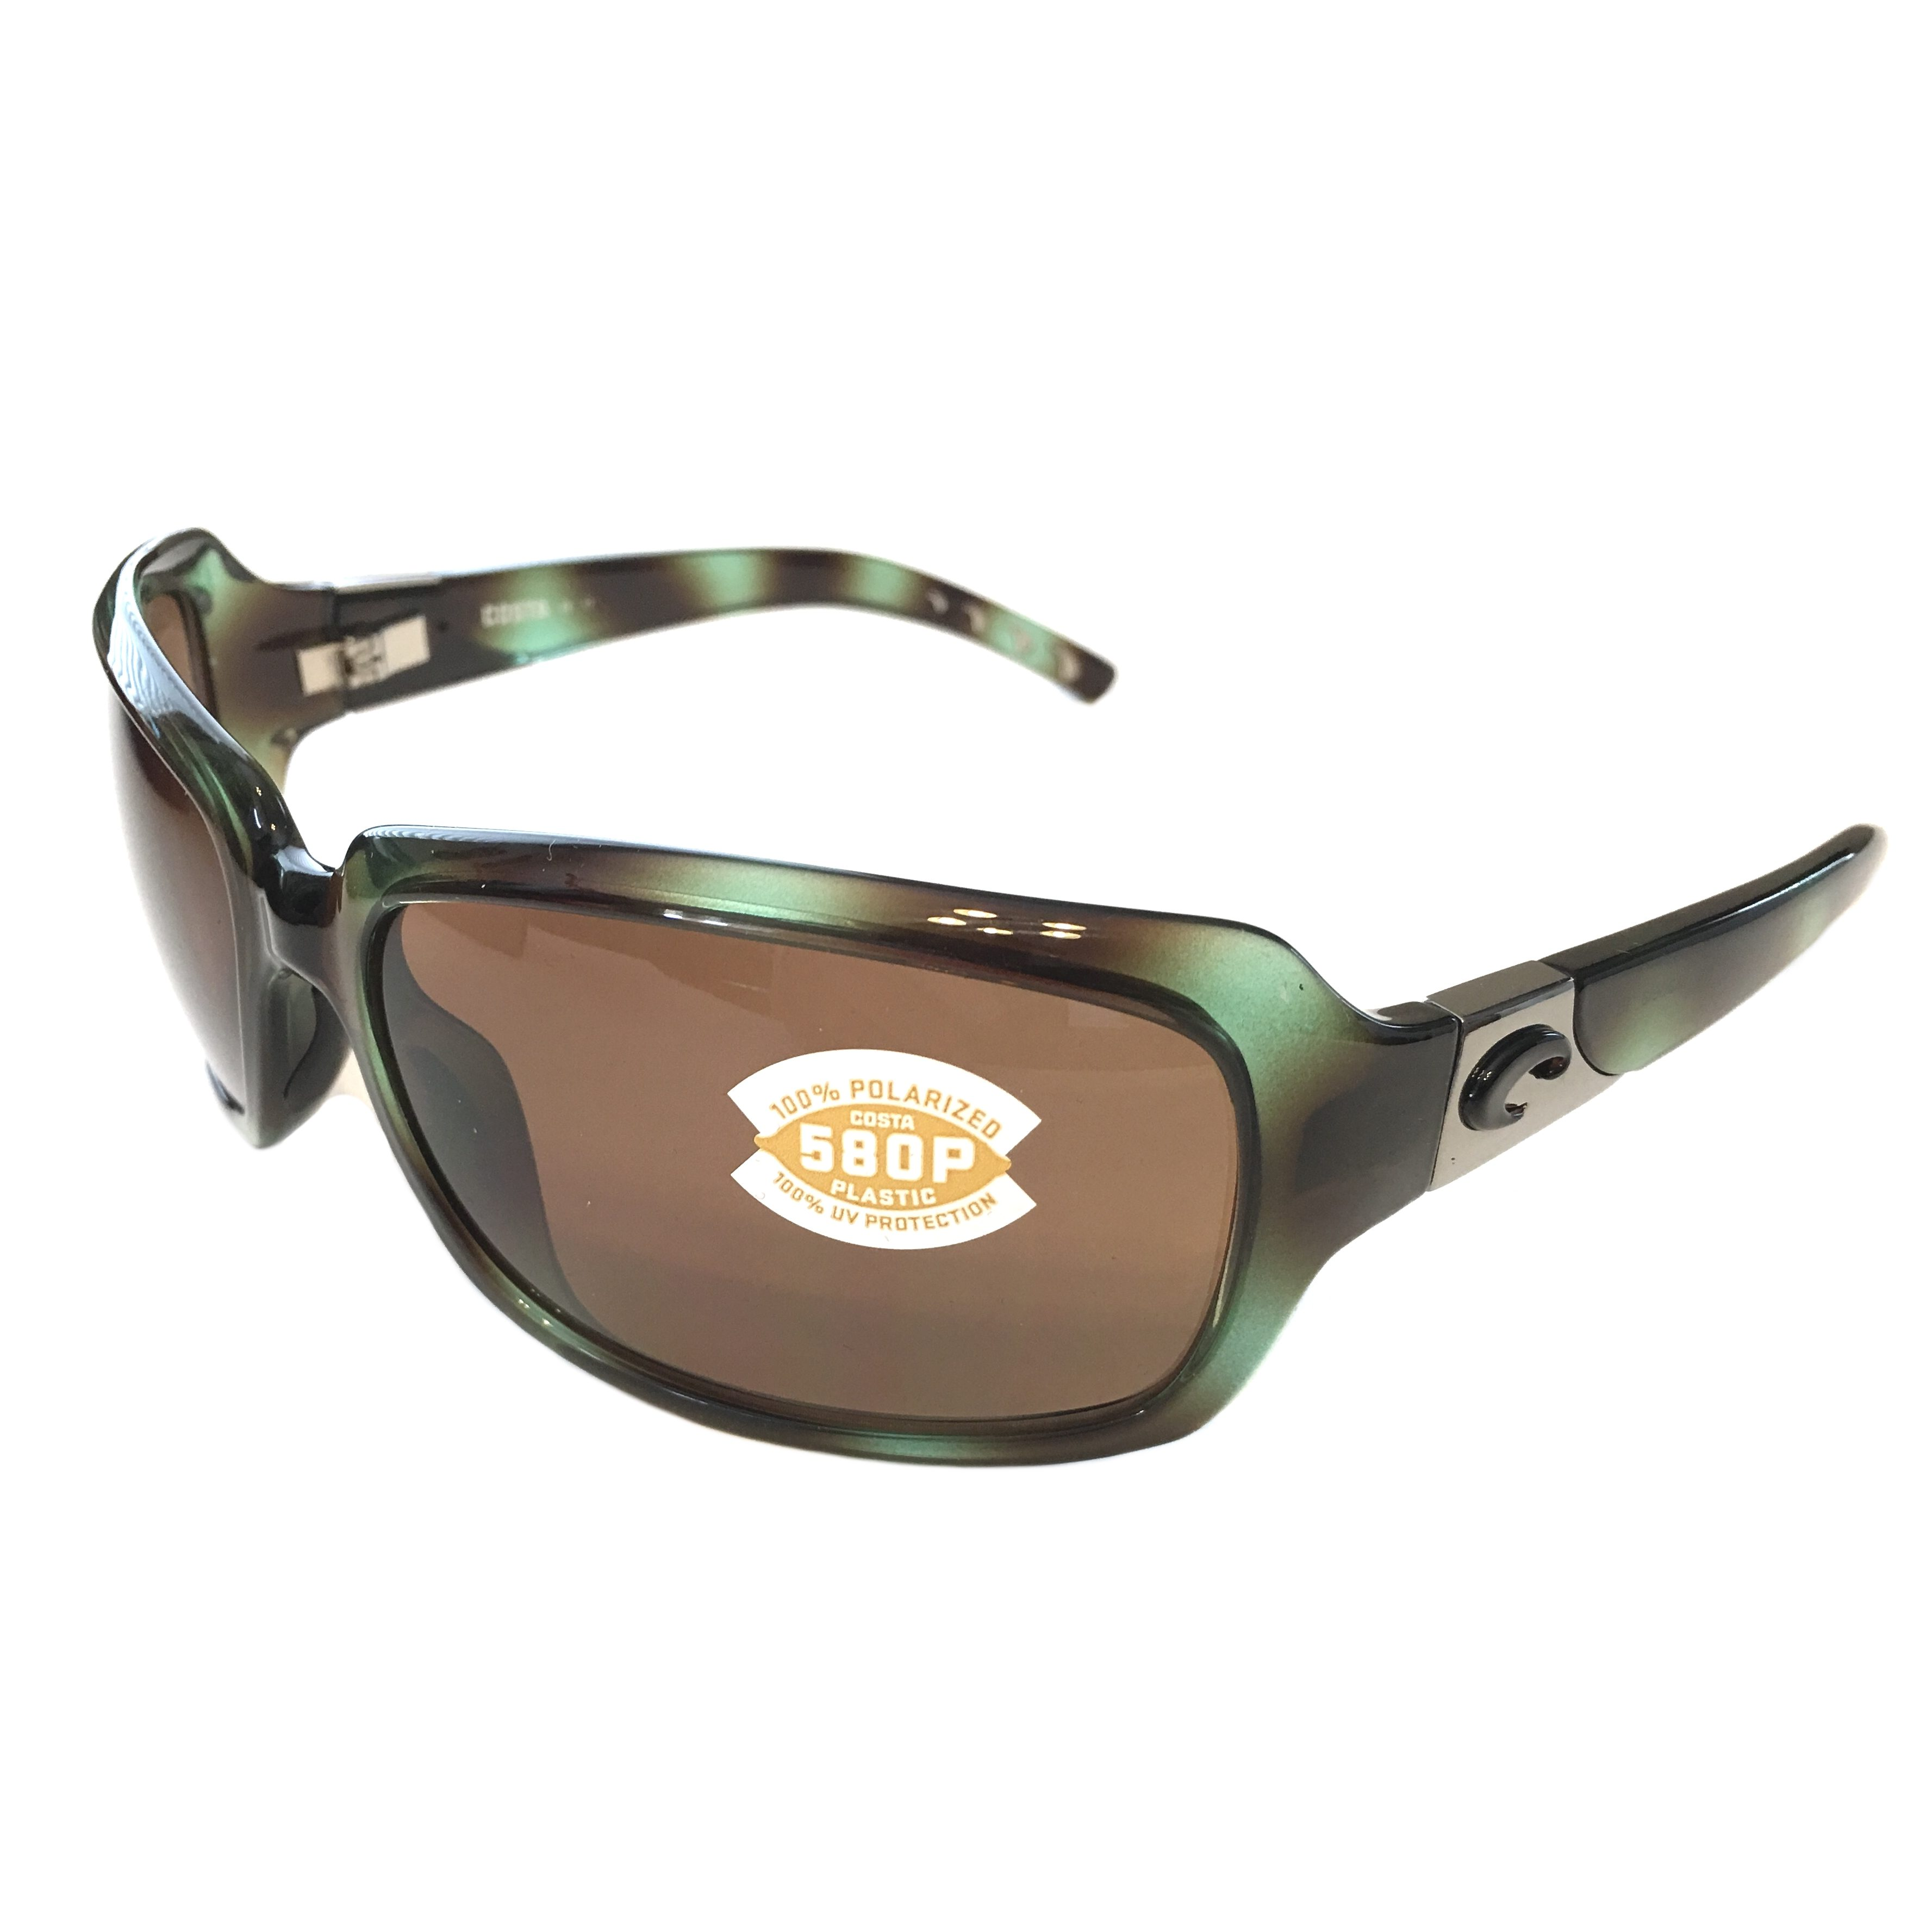 706bb66e810 Costa Del Mar Isabela Sunglasses - Shiny Seagrass Green POLARIZED Amber 580P